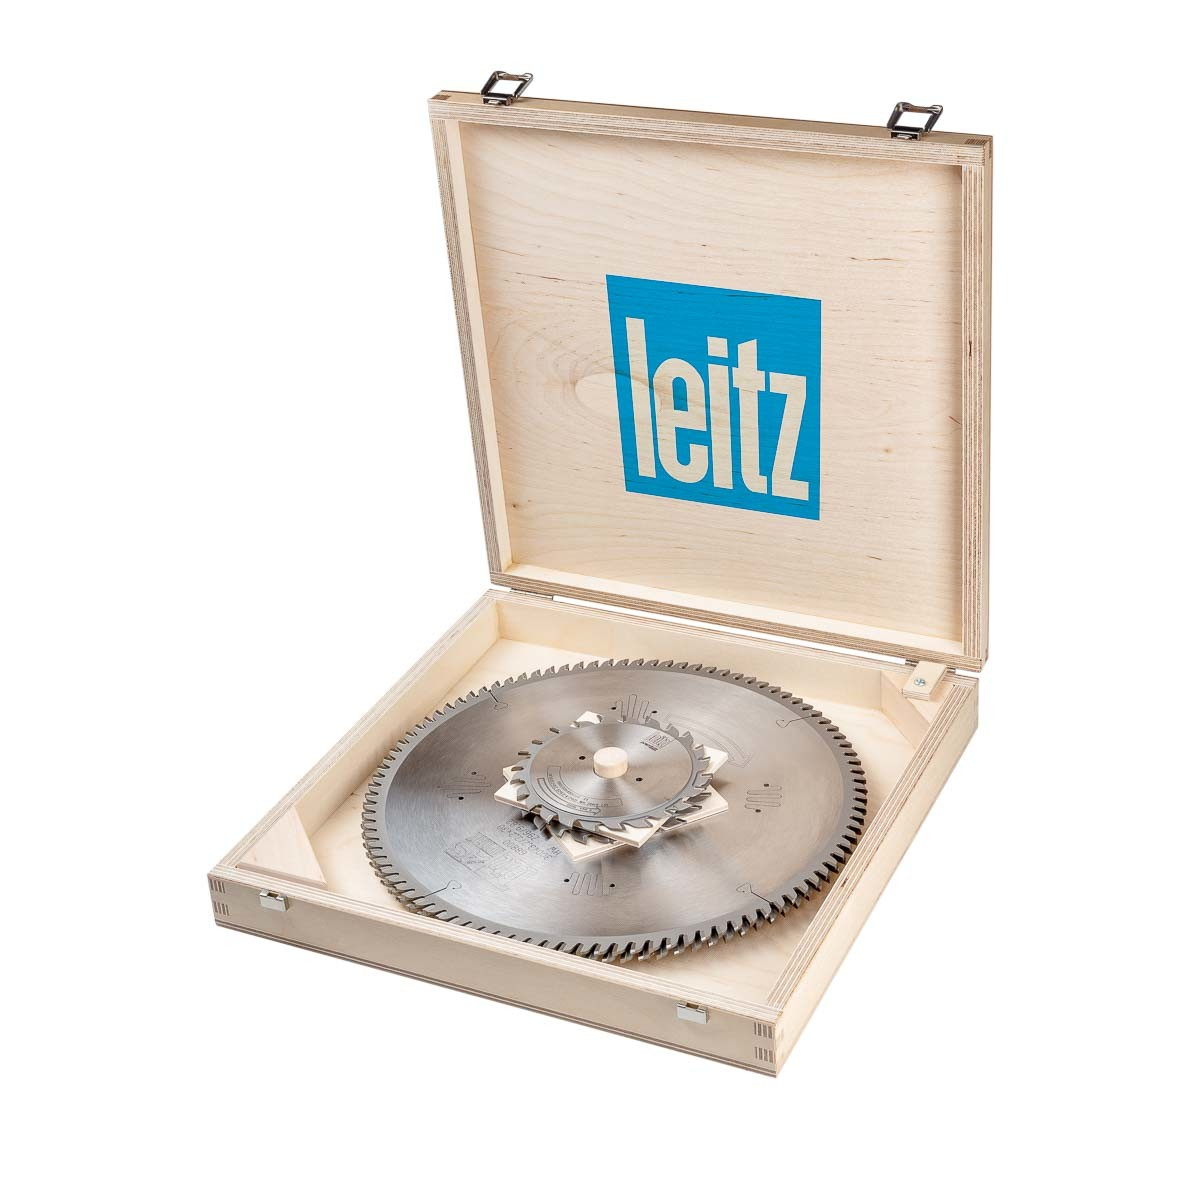 Leitz industrial tools set of saws